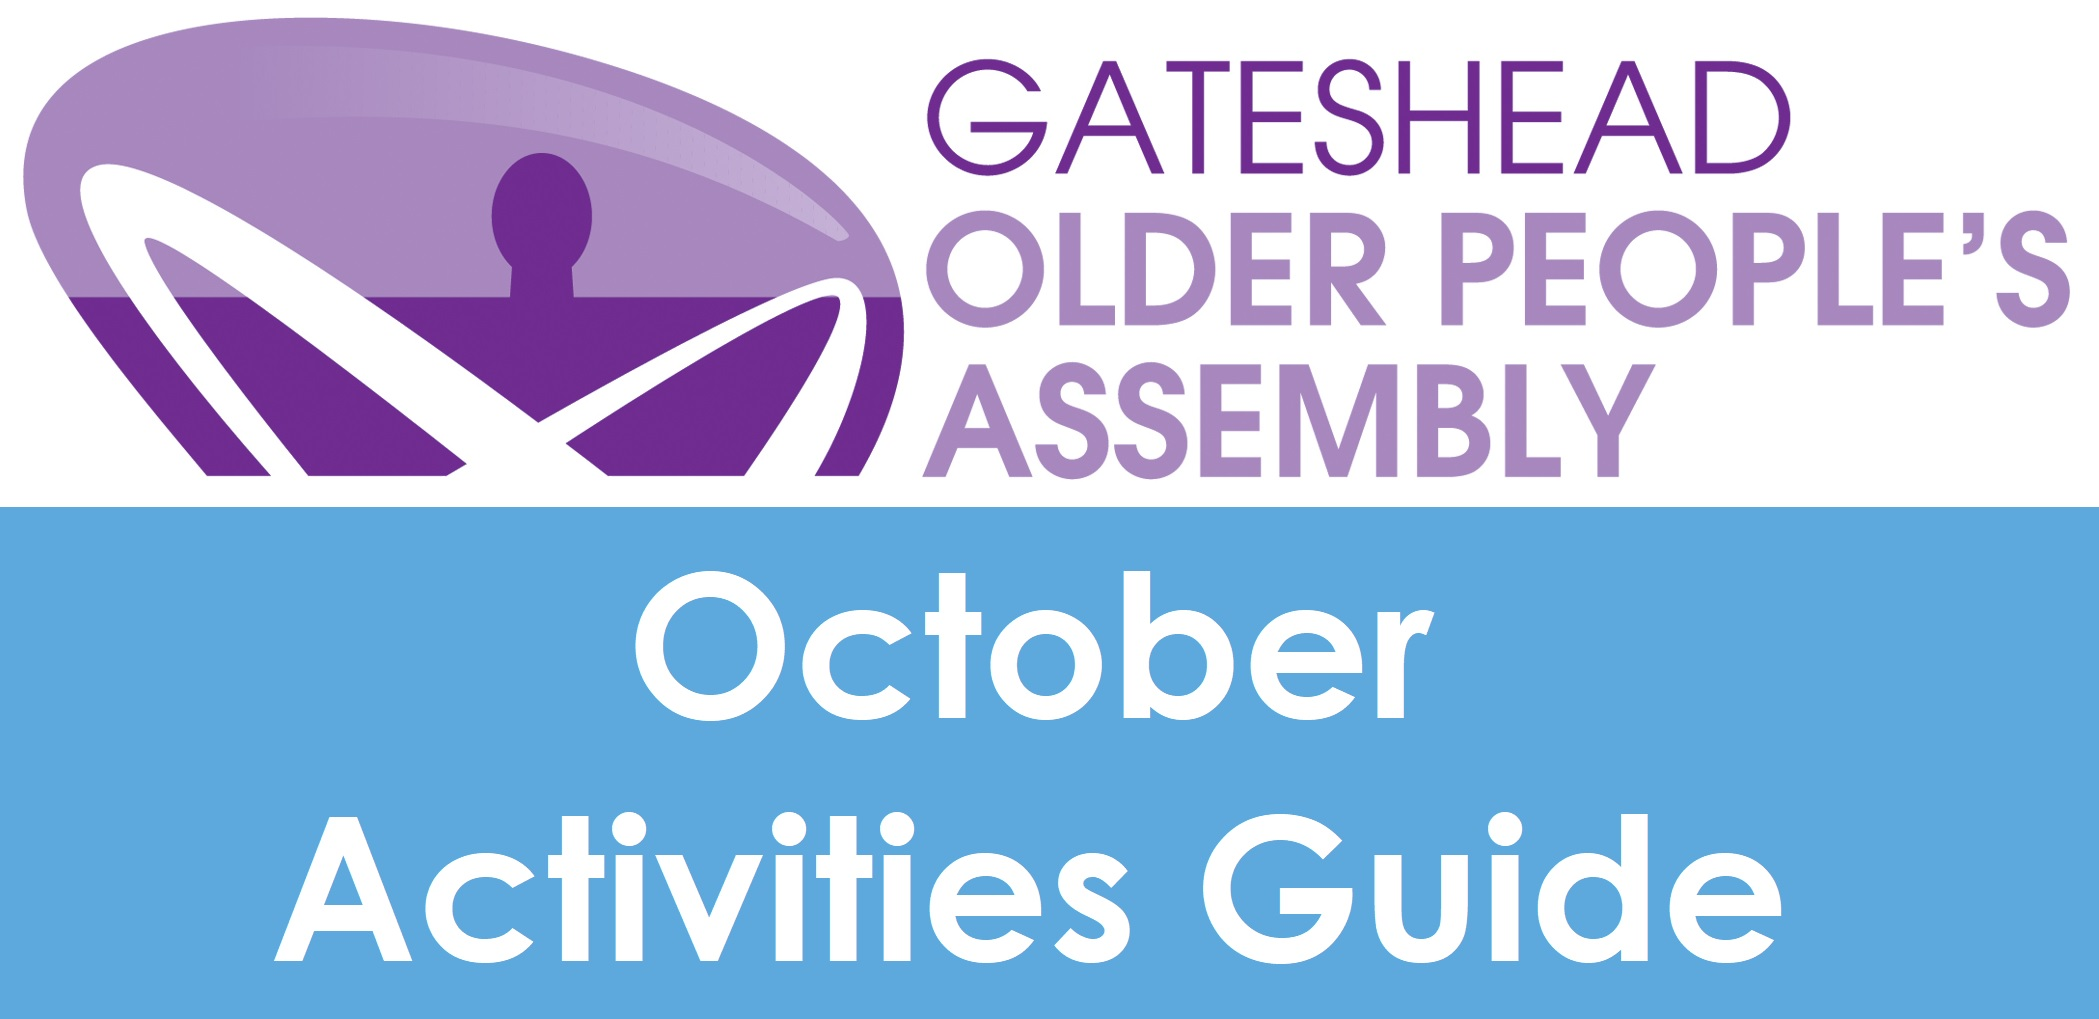 October Activities Guide